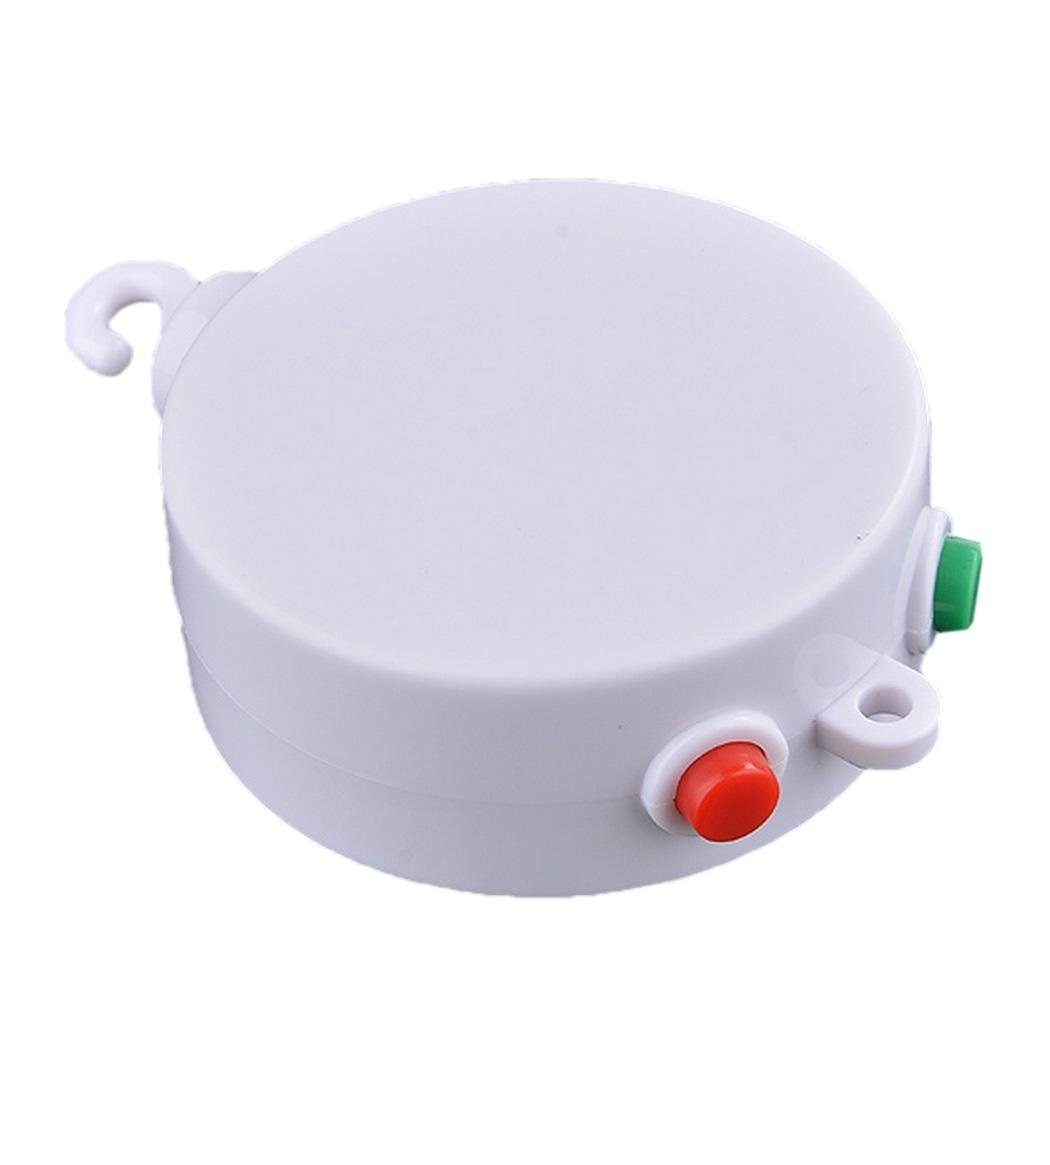 Baby Mobile Crib Bed Bell Electric Autorotation Music White Box 12 Melodies Song